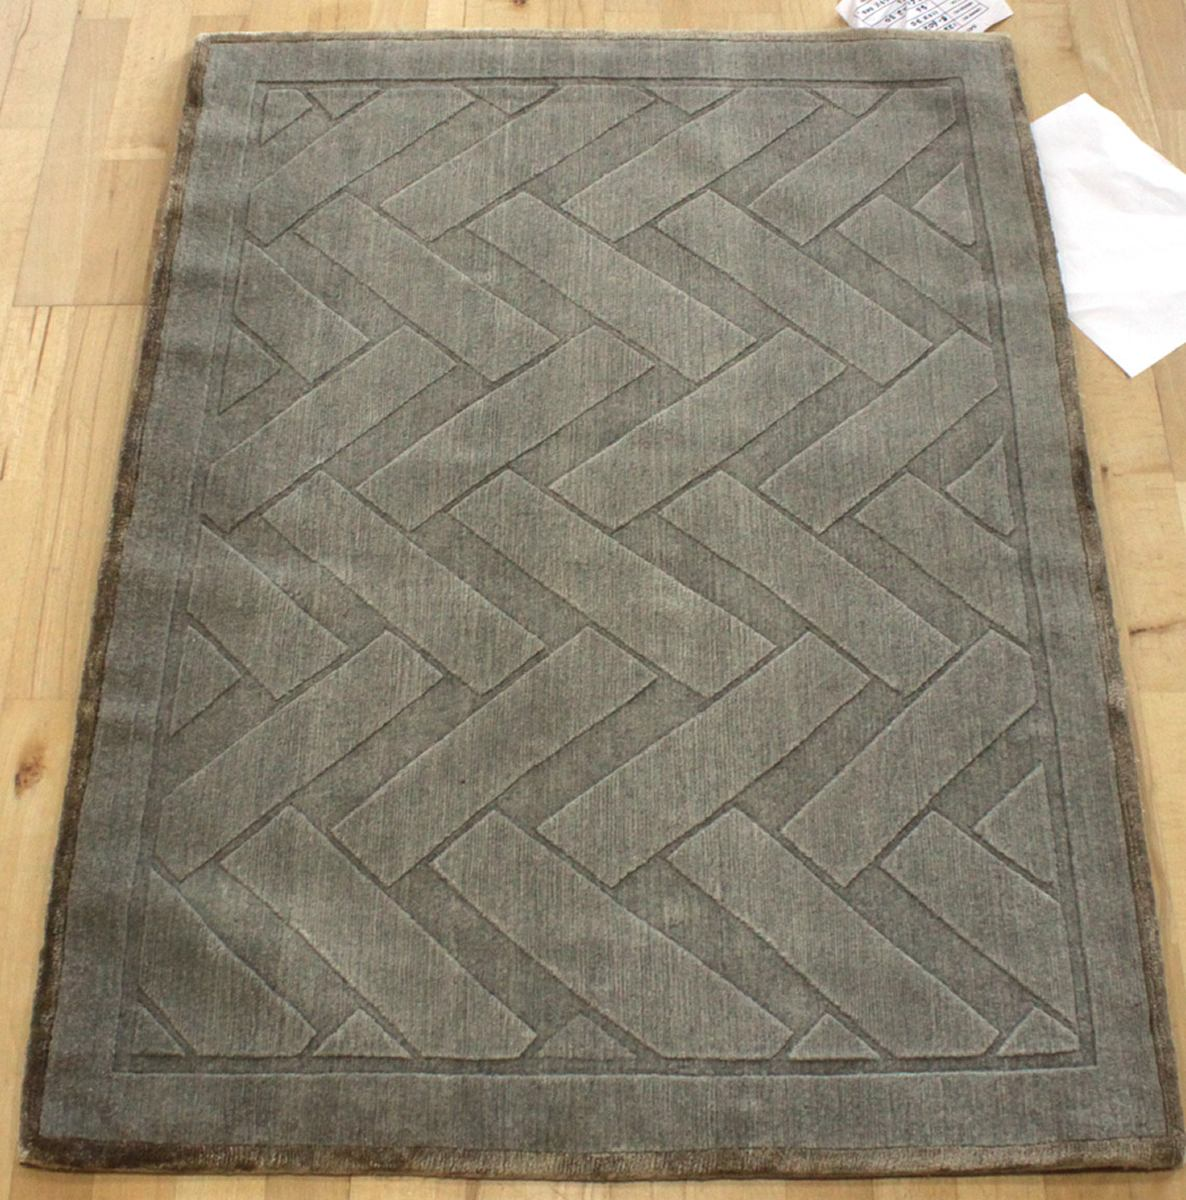 Basketry Handwoven Contemporary Rug